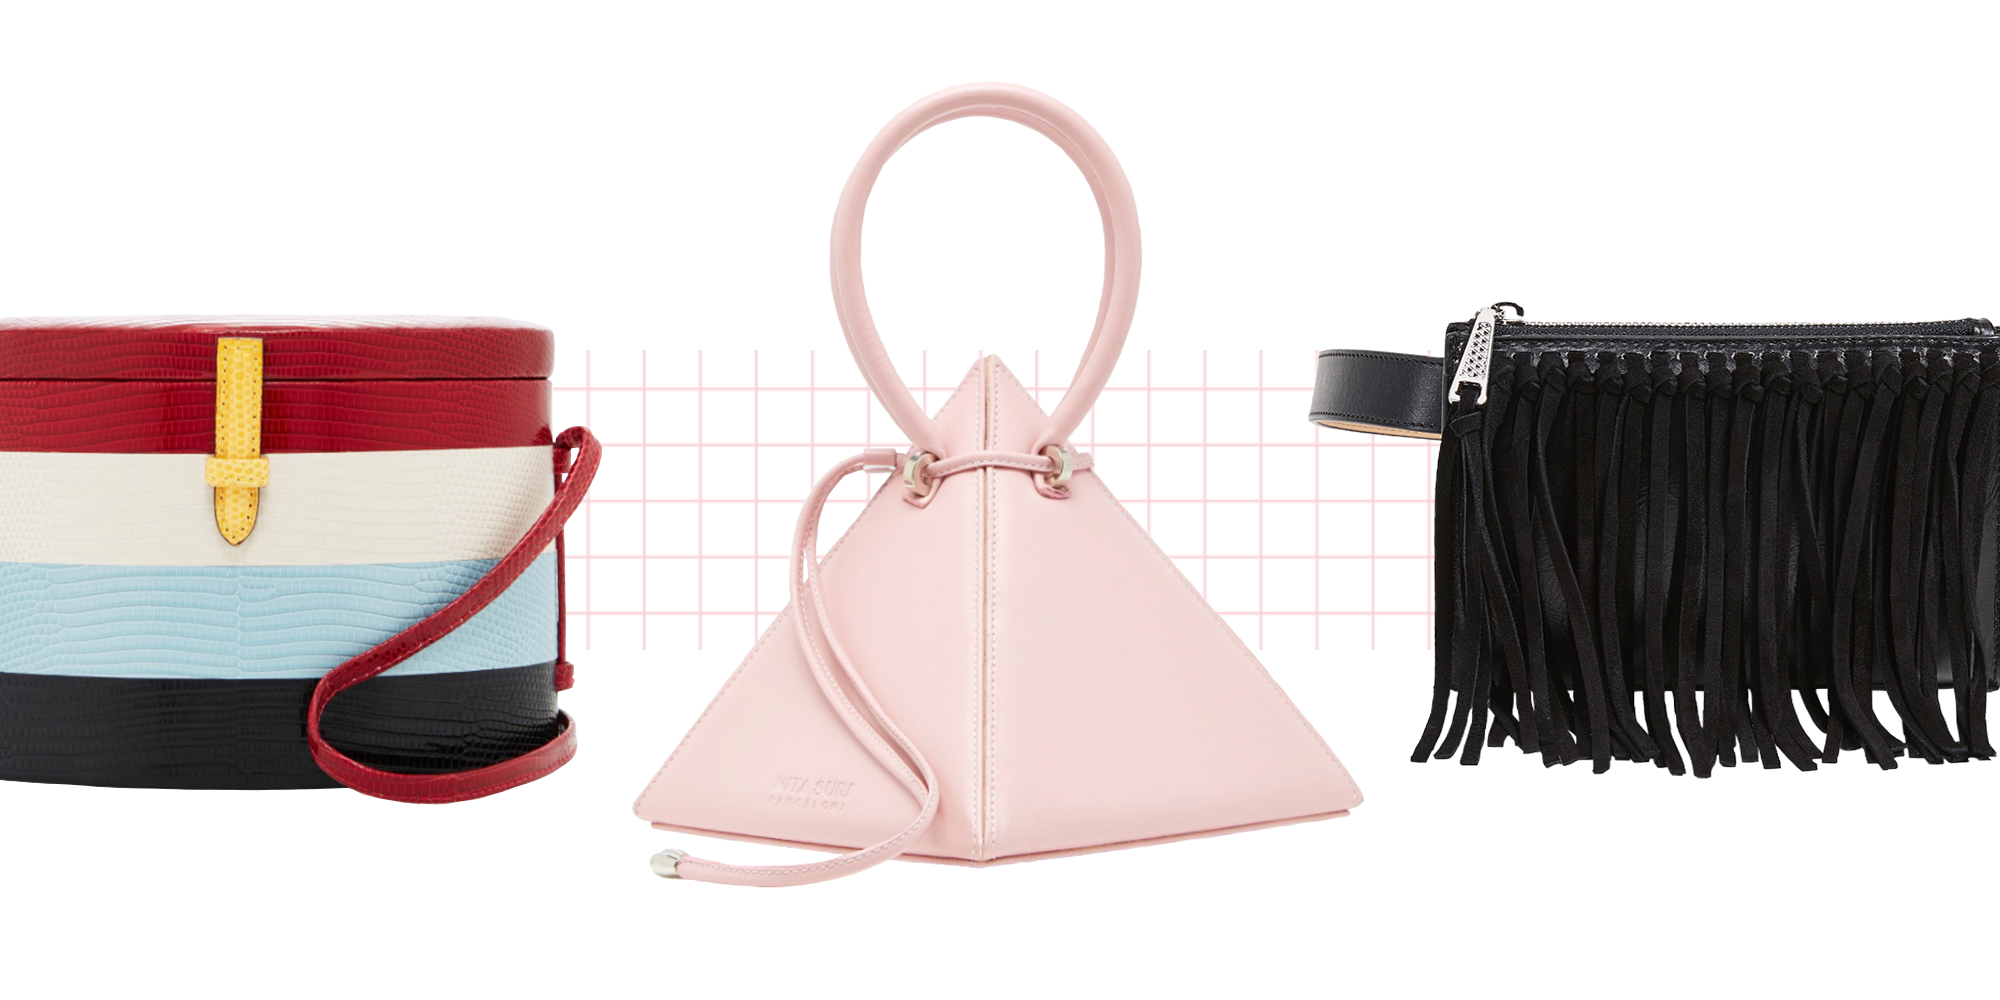 35 spring stylish handbags trends recommendations dress for autumn in 2019